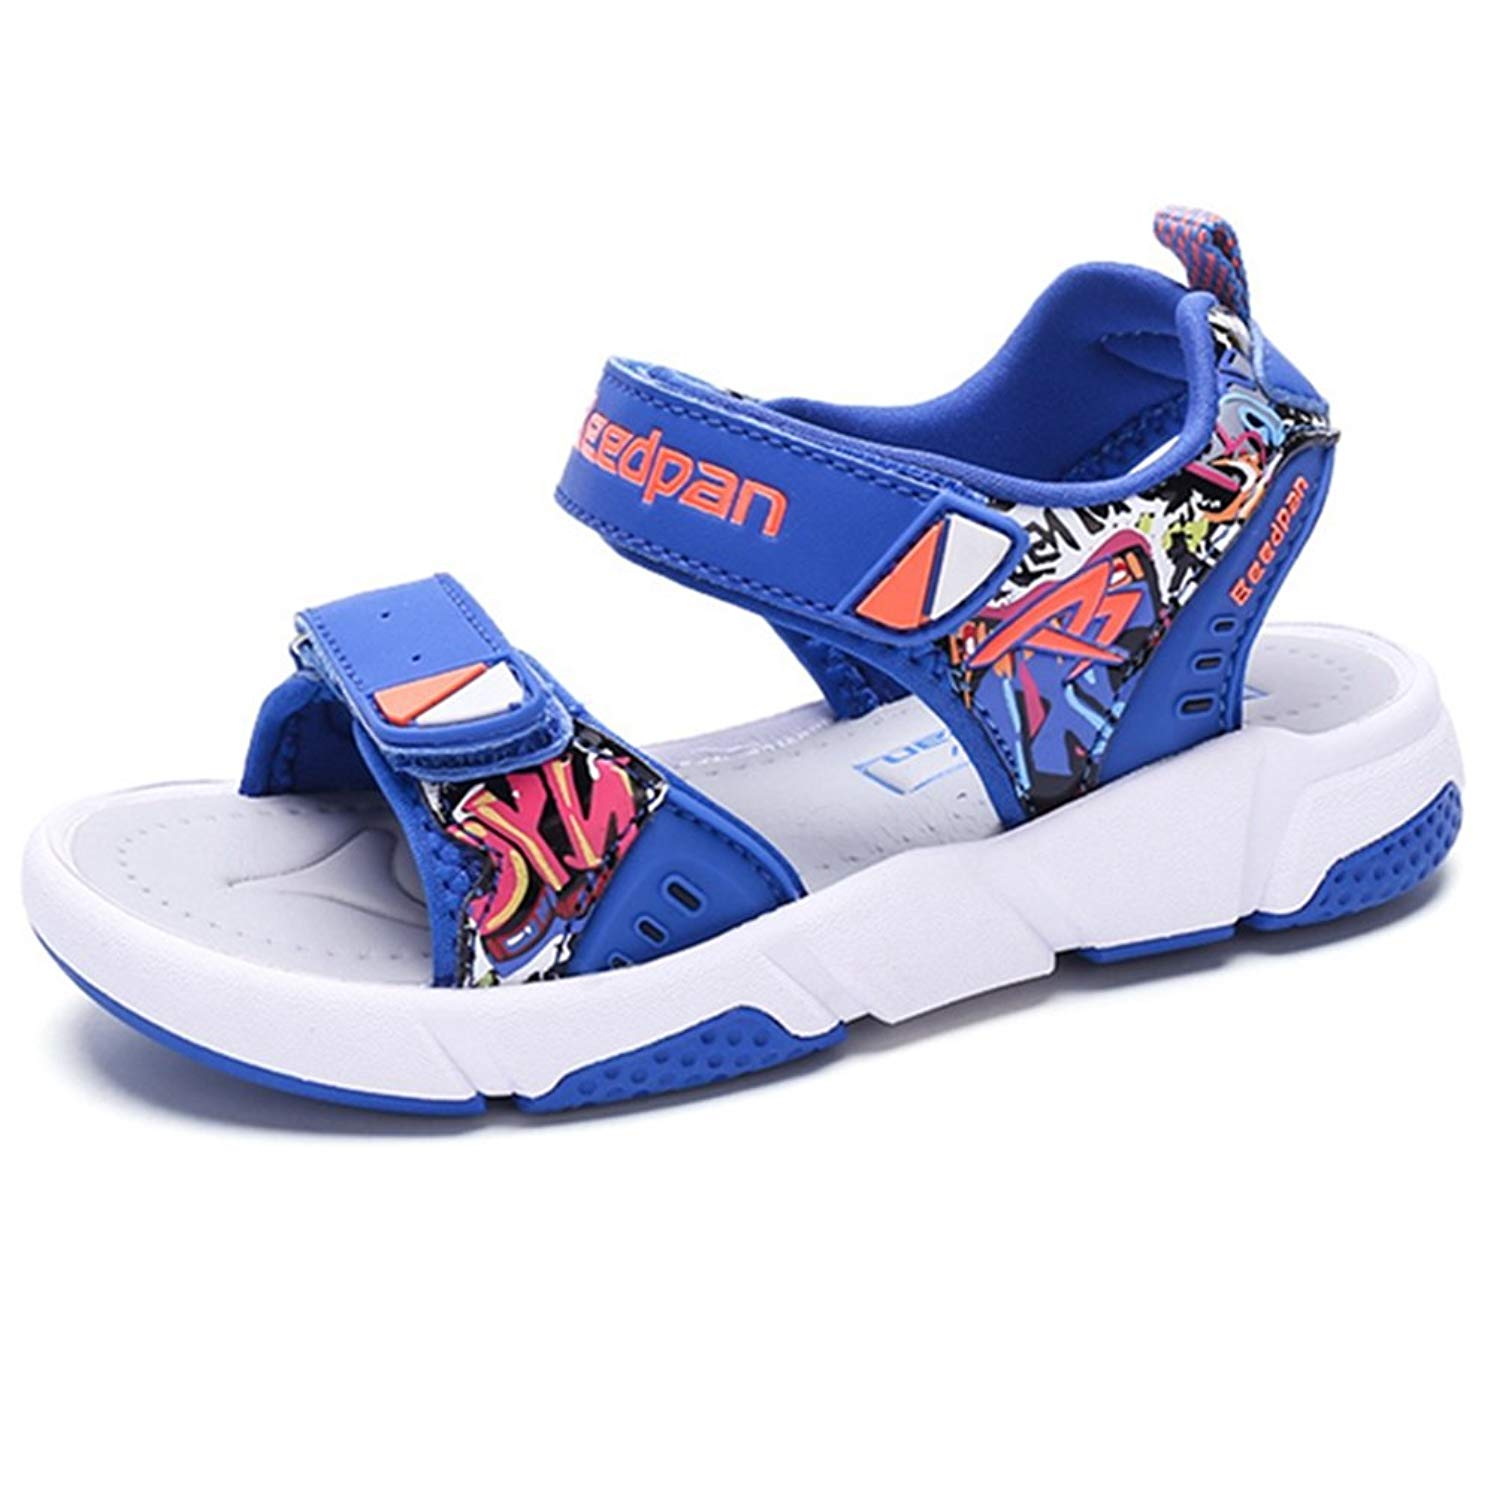 3e410169aa7a9 Cheap Sandals Good For Walking, find Sandals Good For Walking deals ...